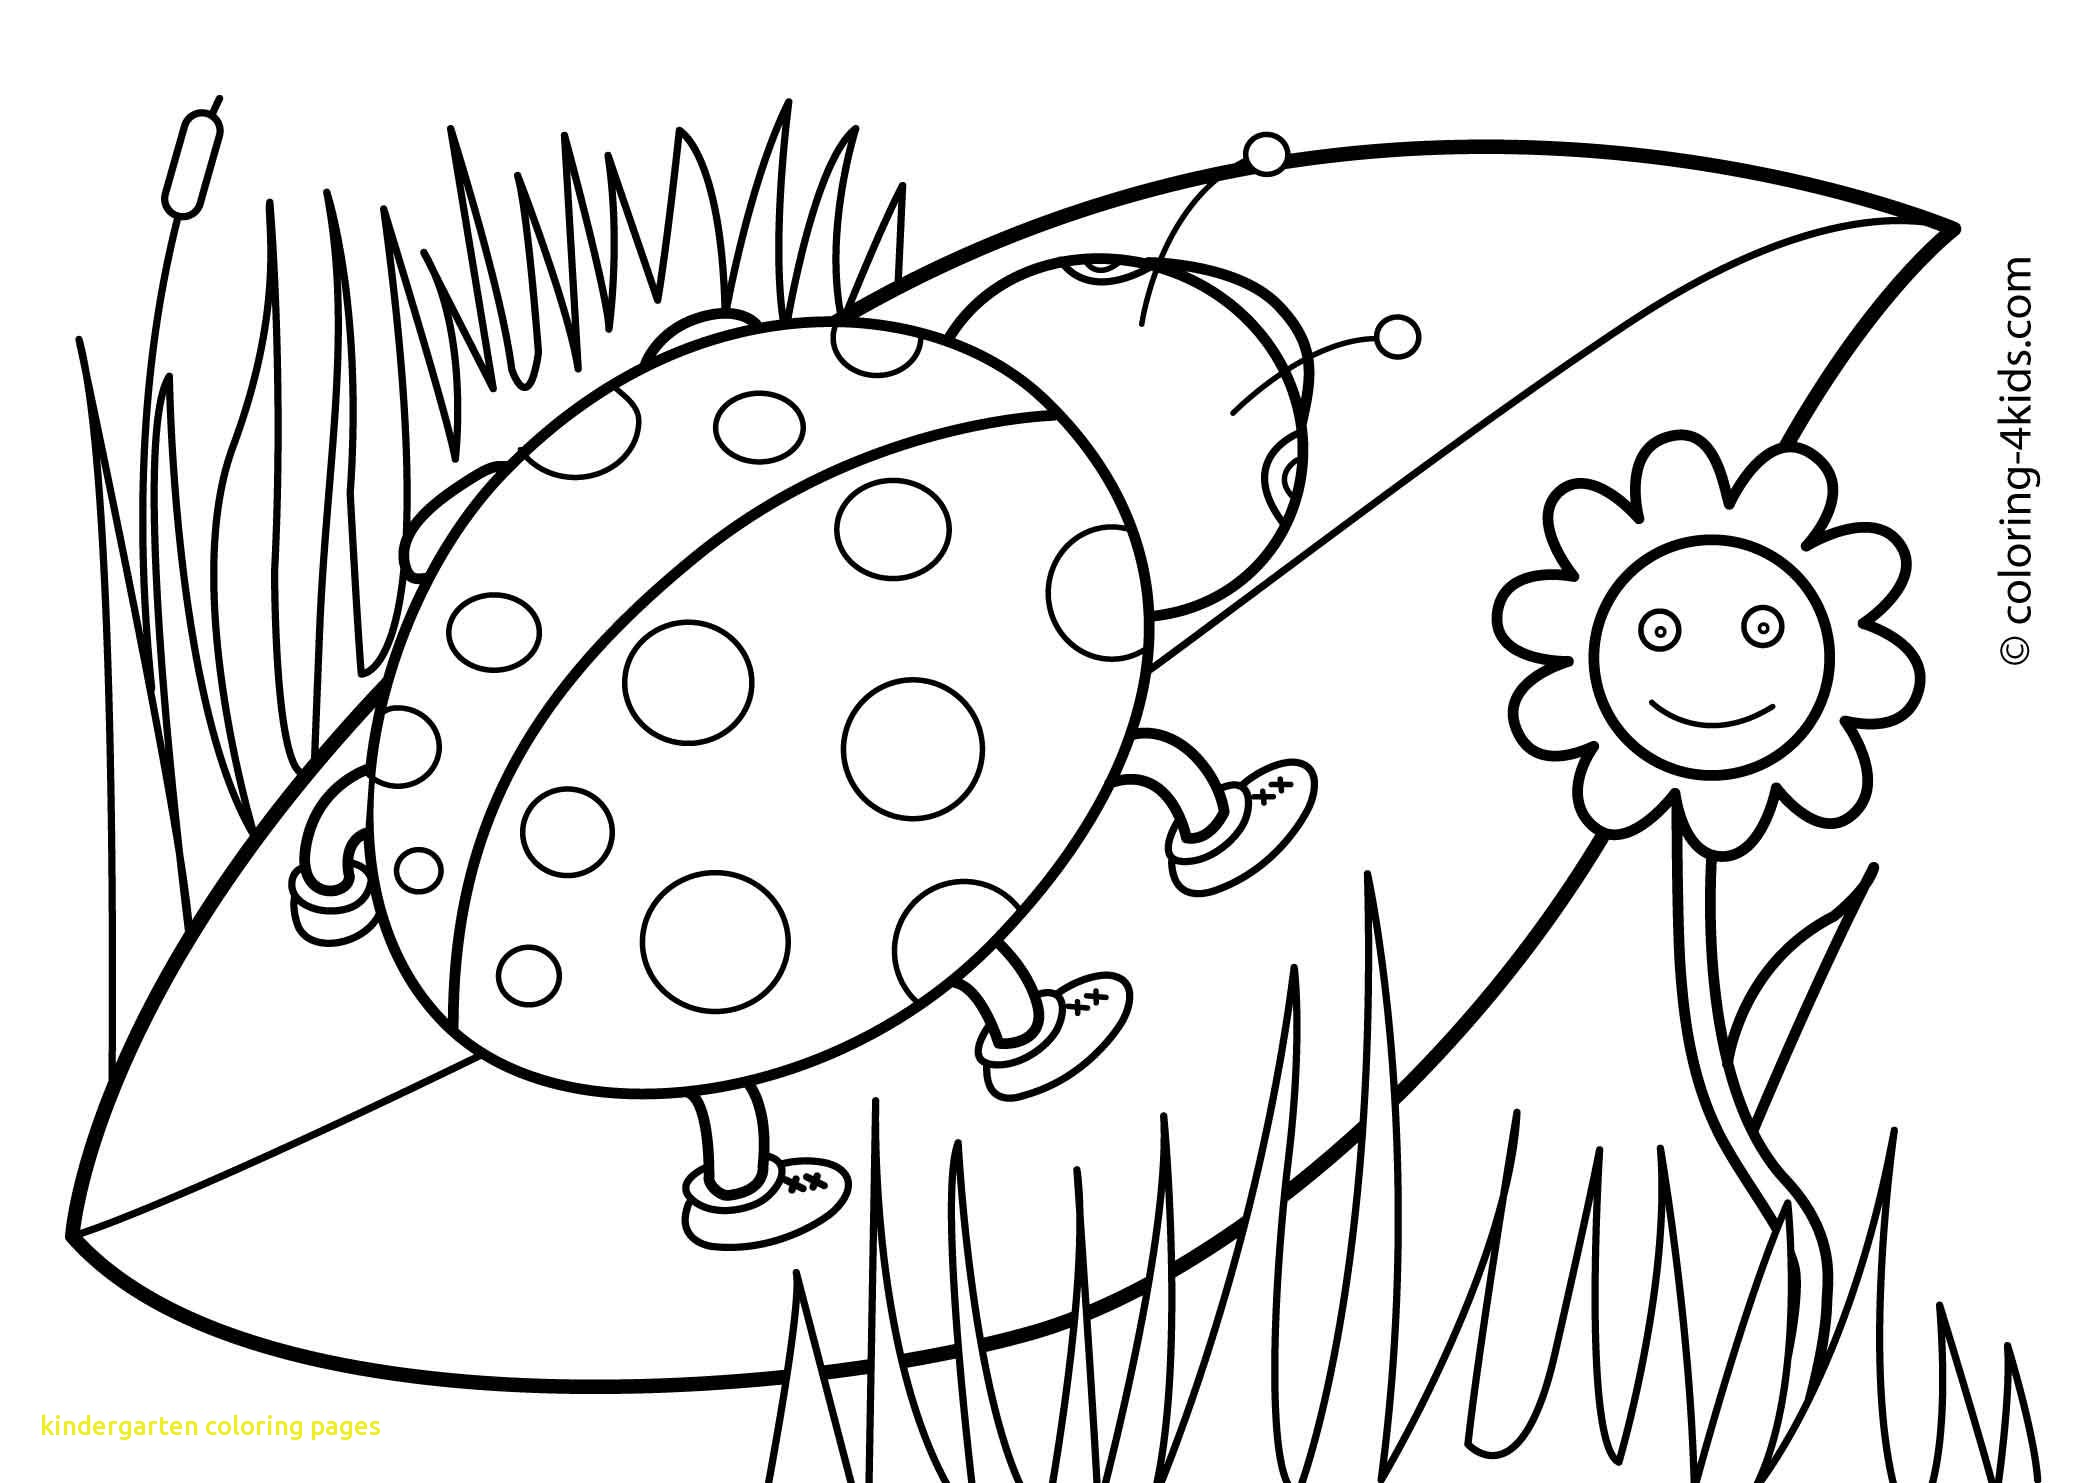 coloring picture kindergarten free printable kindergarten coloring pages for kids picture coloring kindergarten